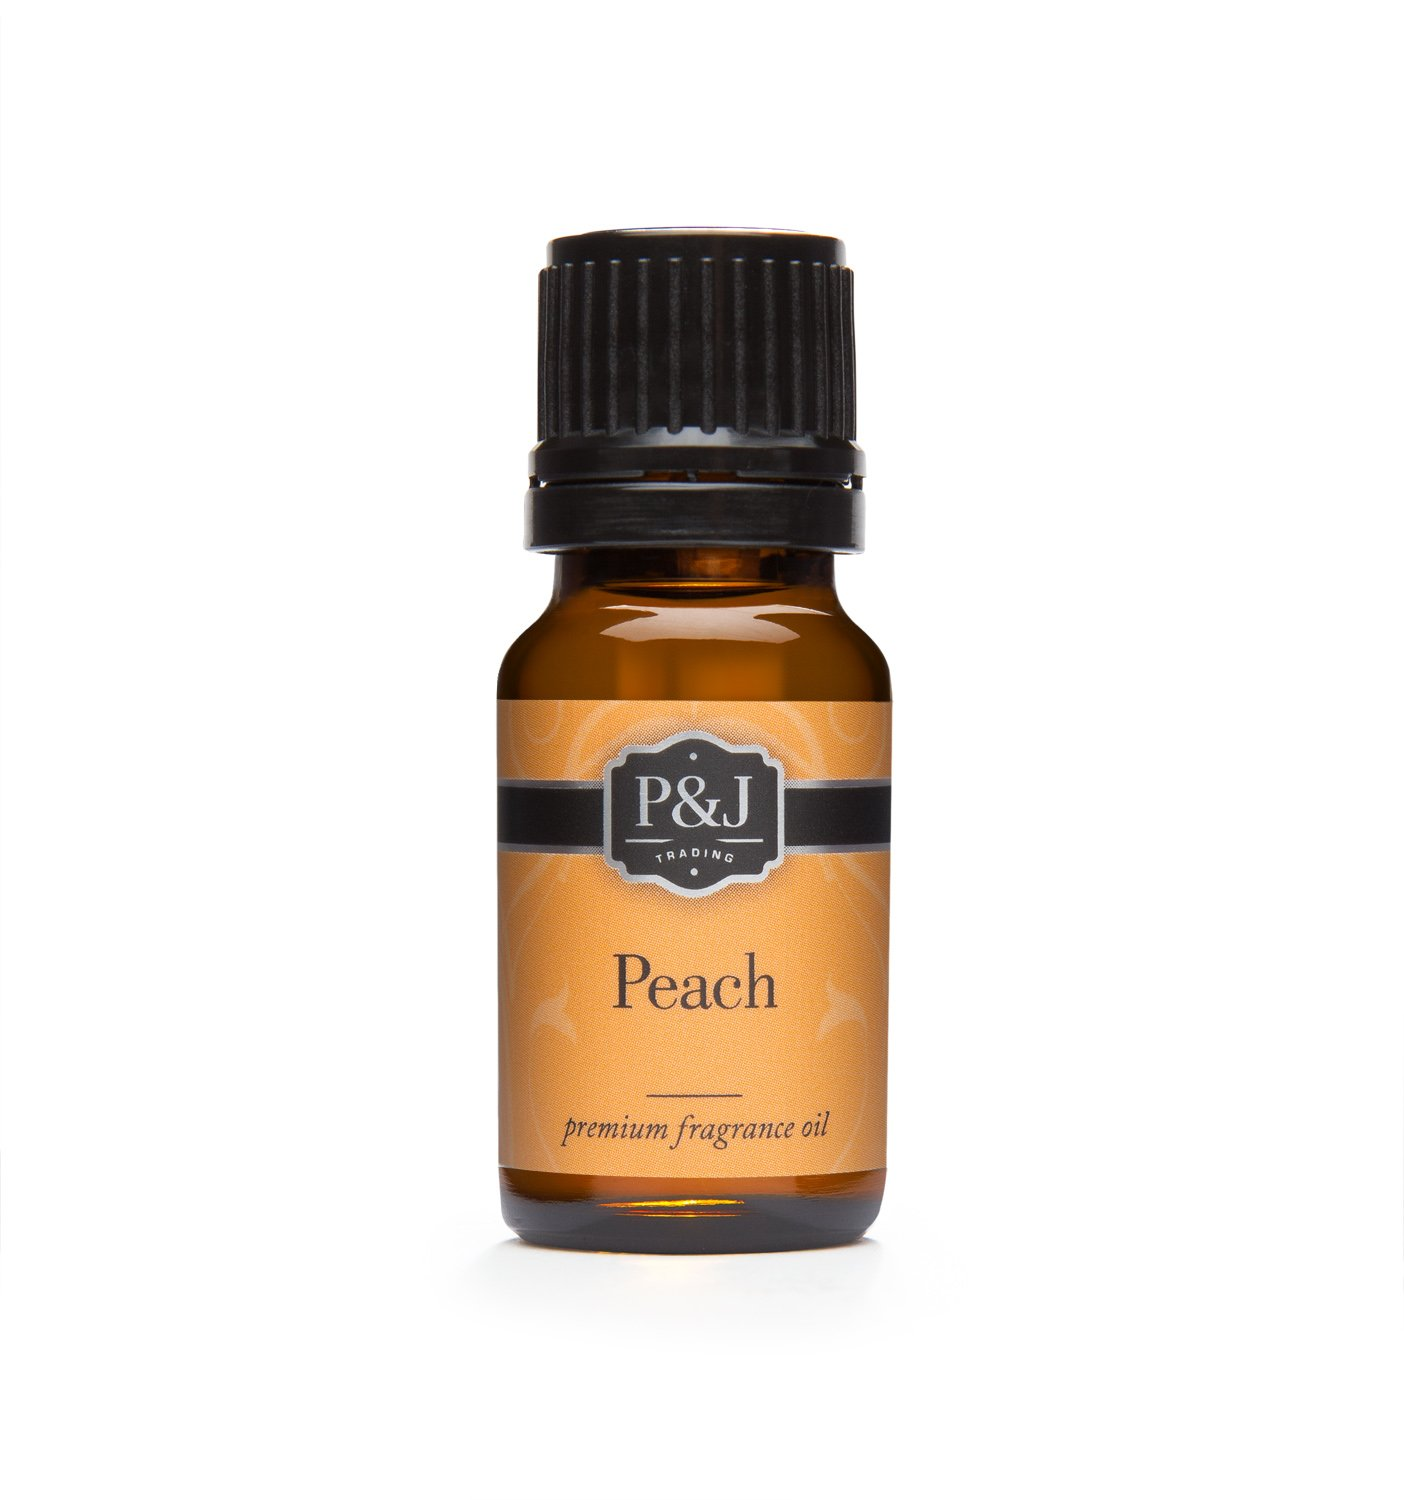 Peach Premium Grade Fragrance Oil - 10ml Perfume Scented Oil